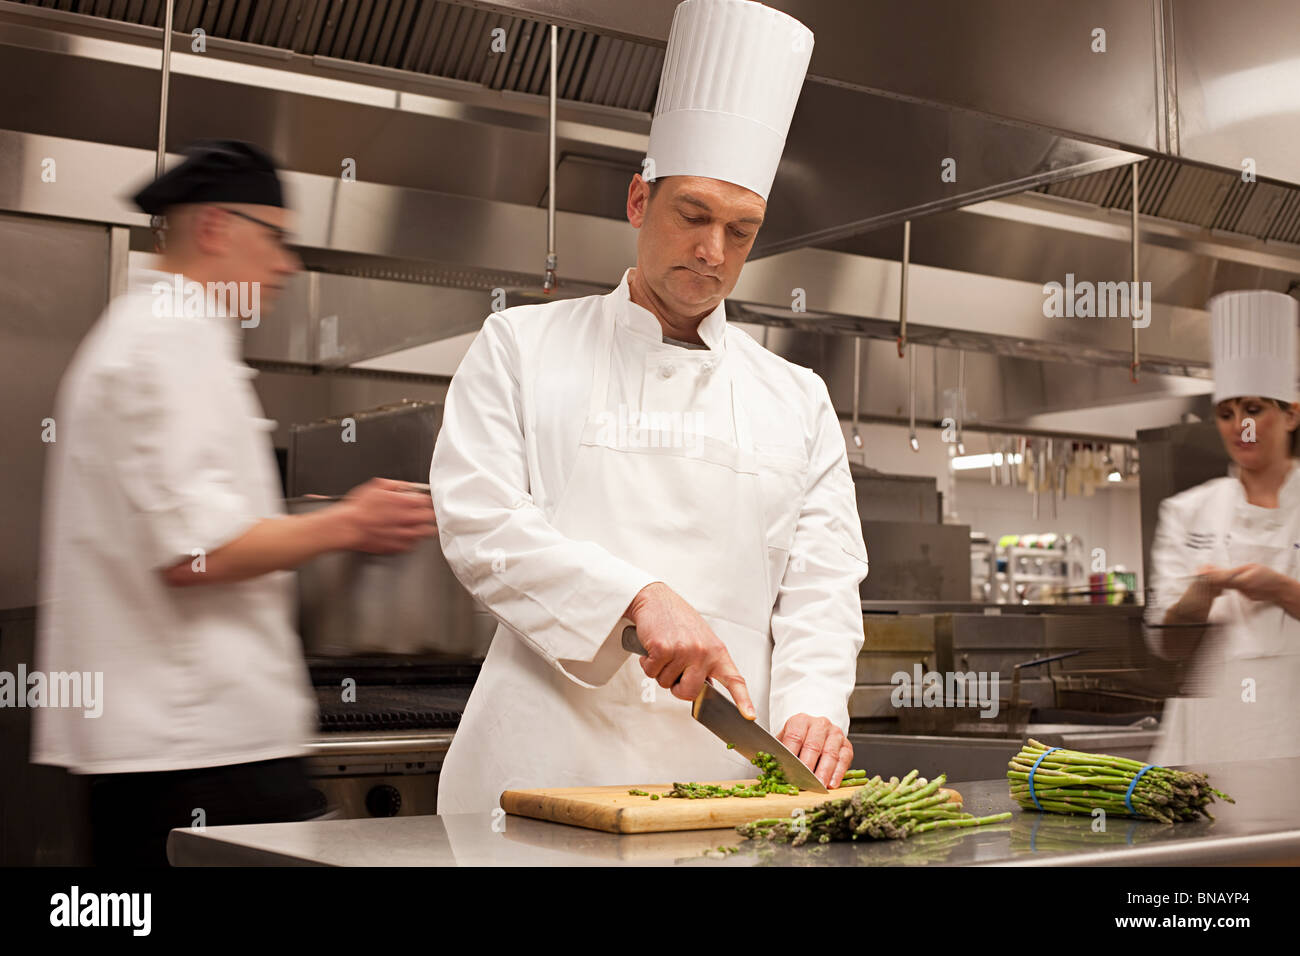 Chefs preparing food in commercial kitchen - Stock Image